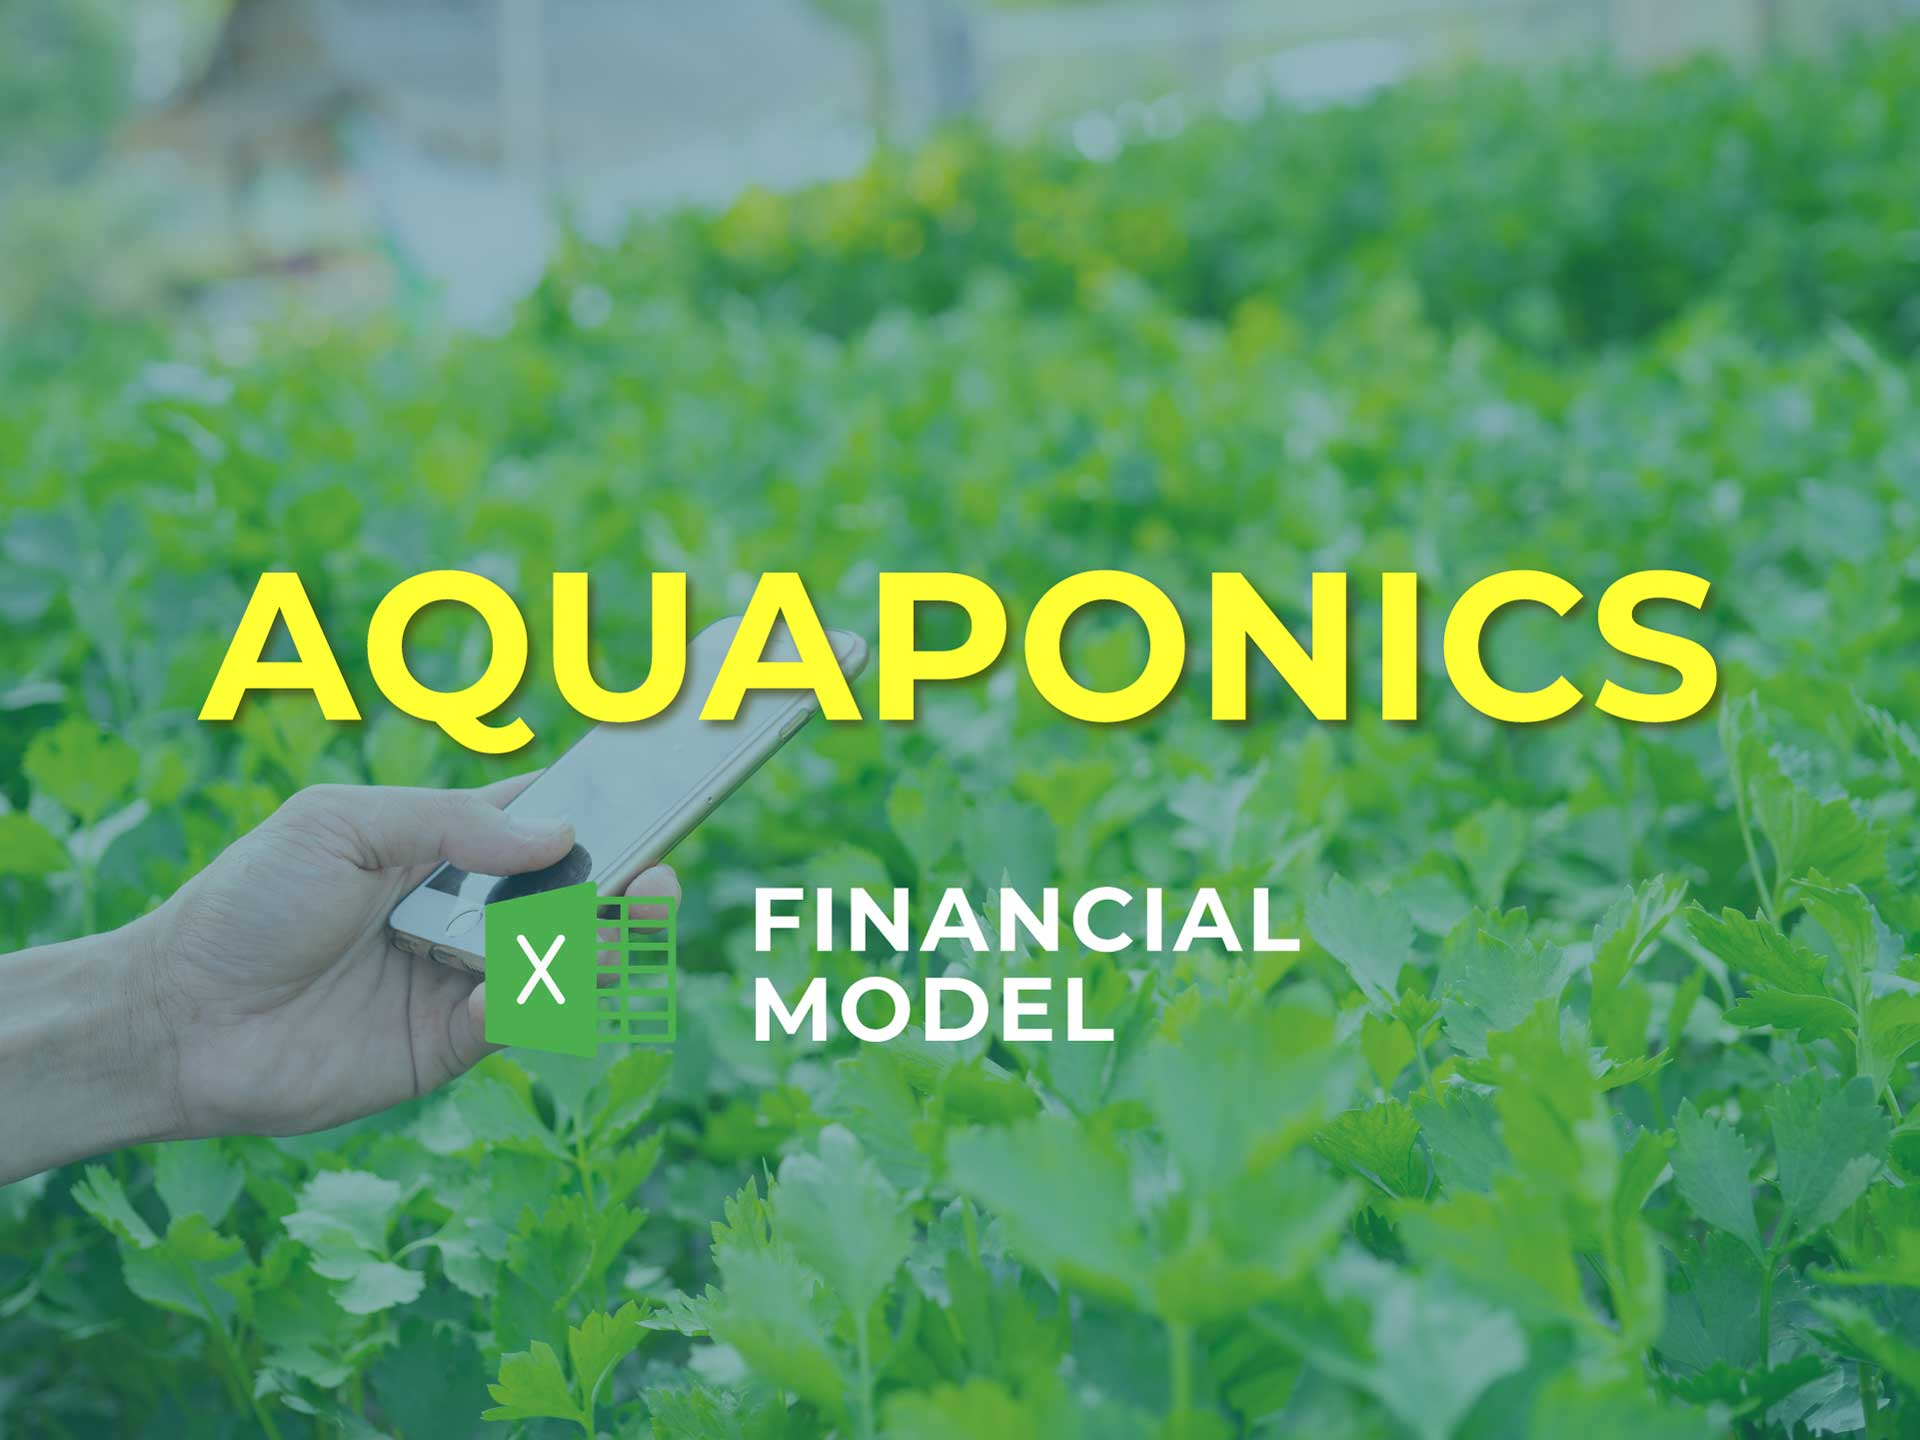 Aquaponics Financial Model Excel Template - Templarket -  Business Templates Marketplace